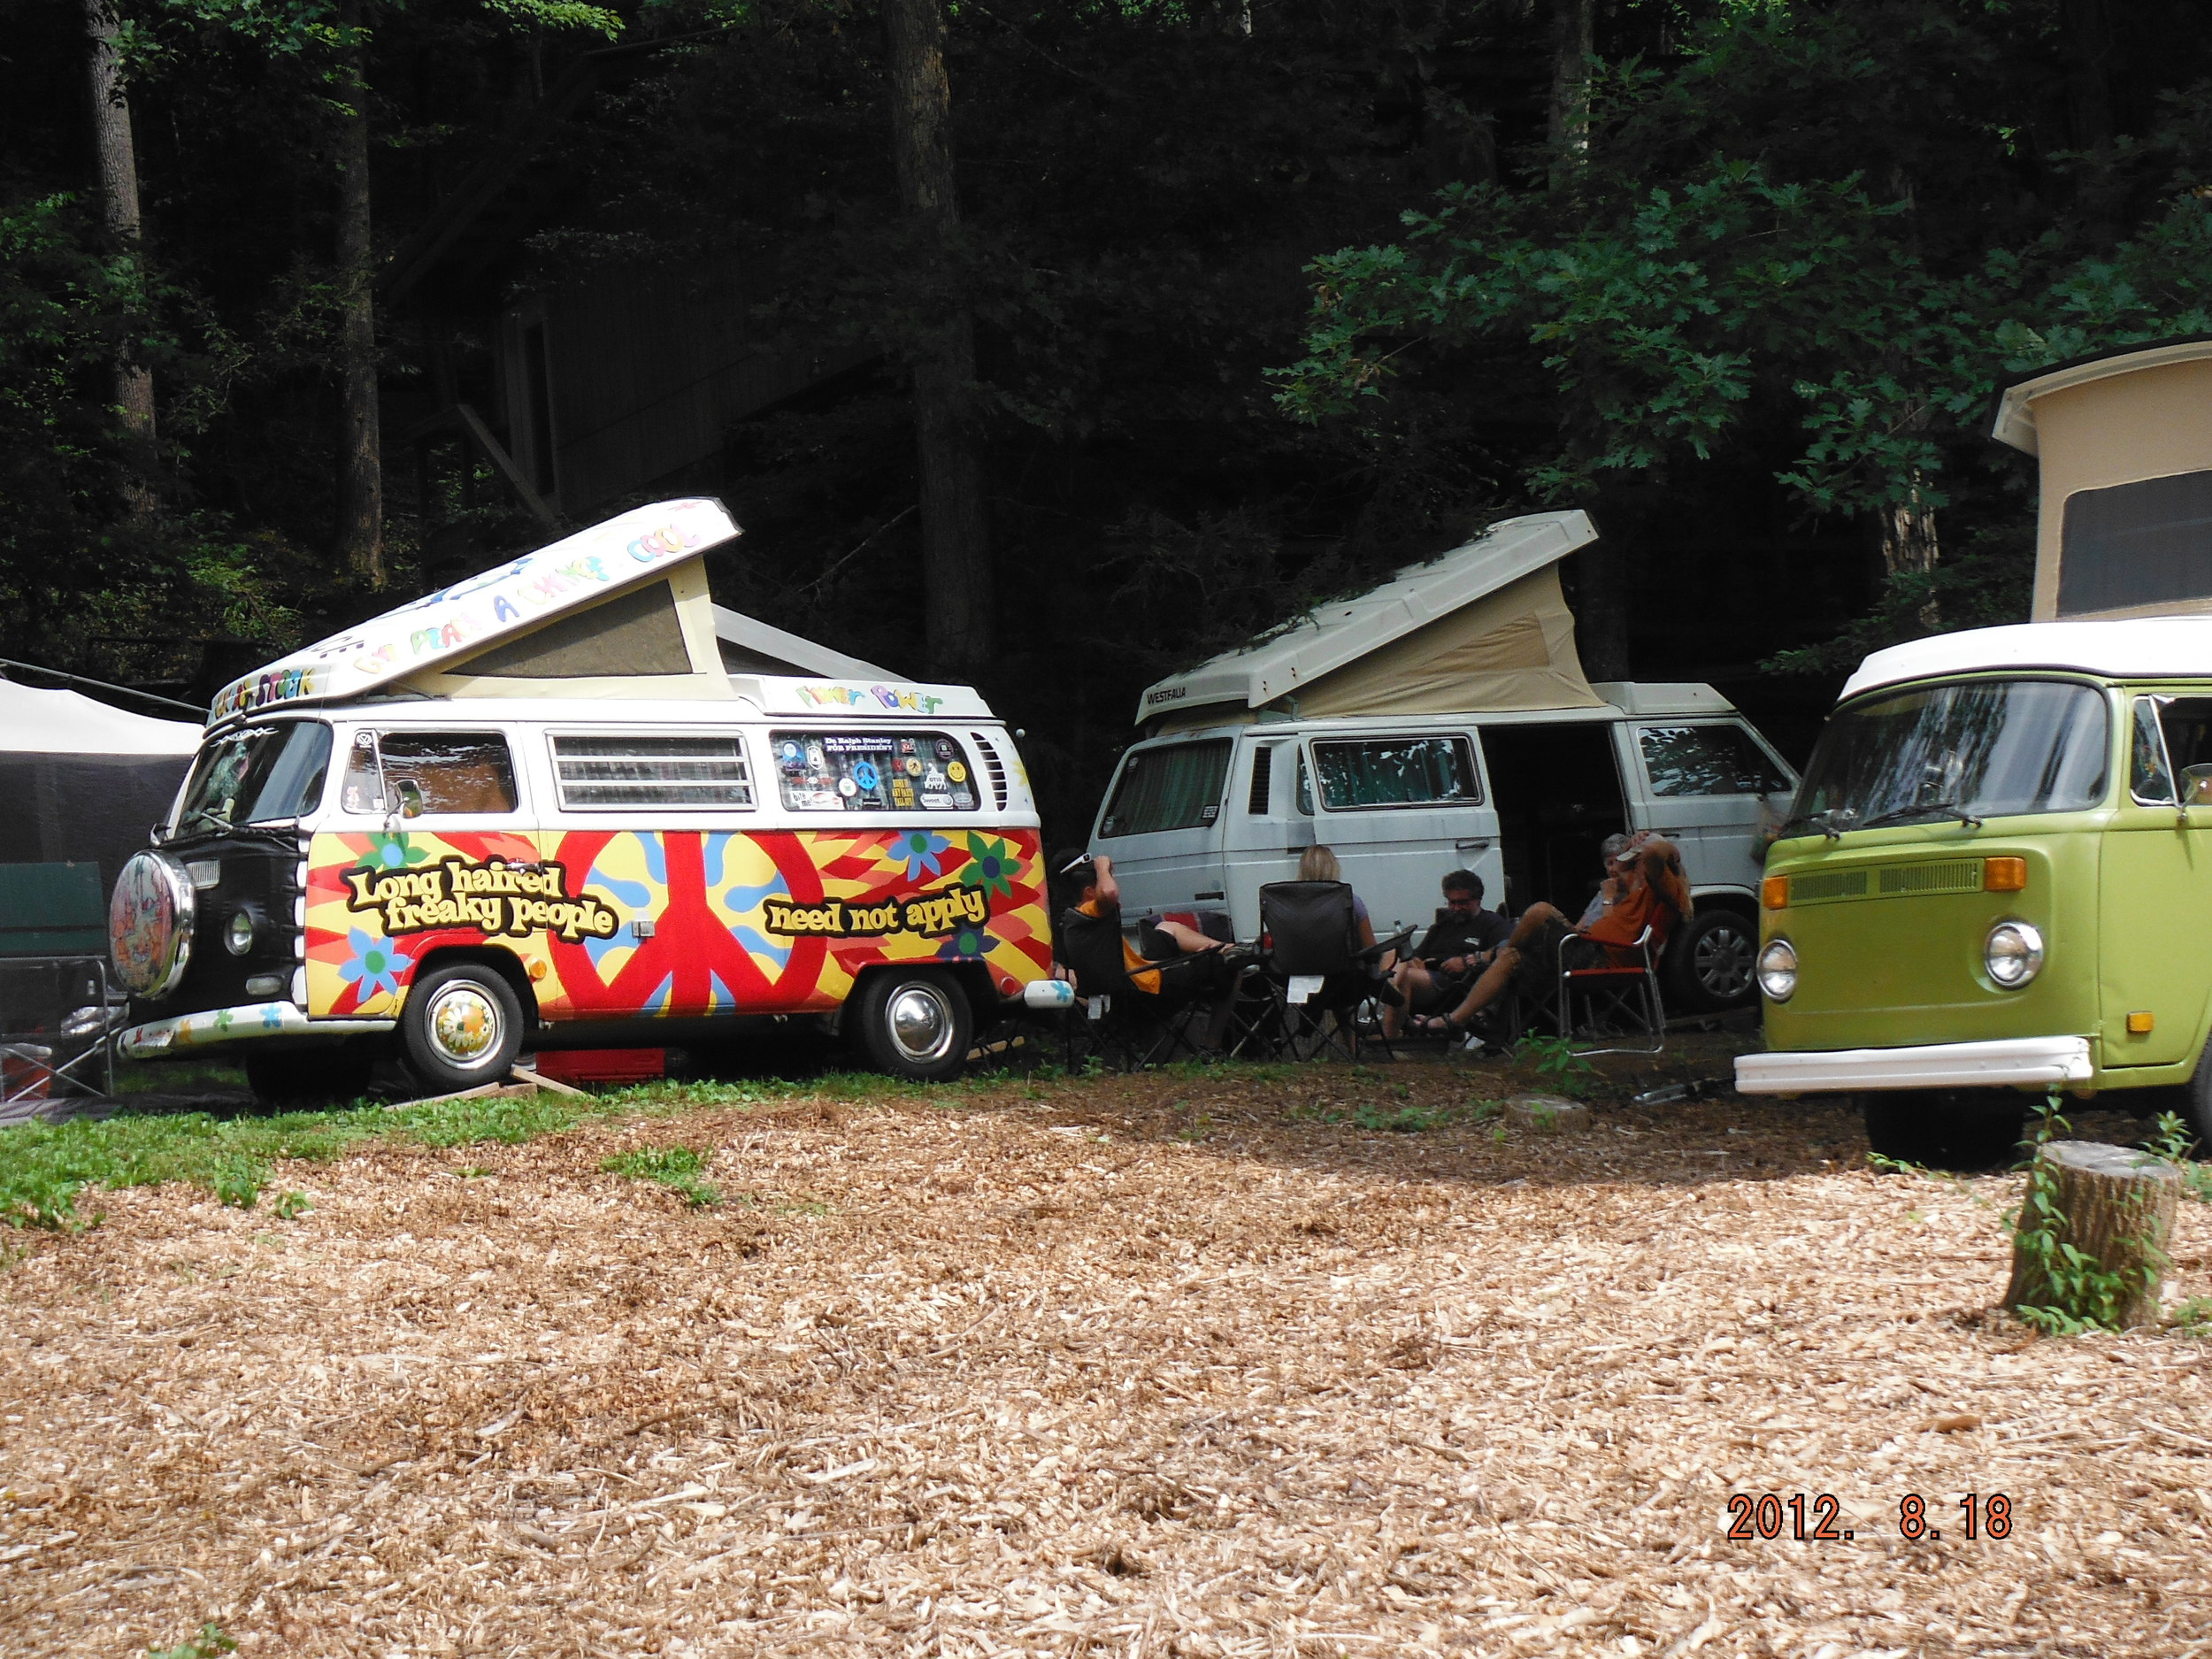 Every August, VW vans take over the campground